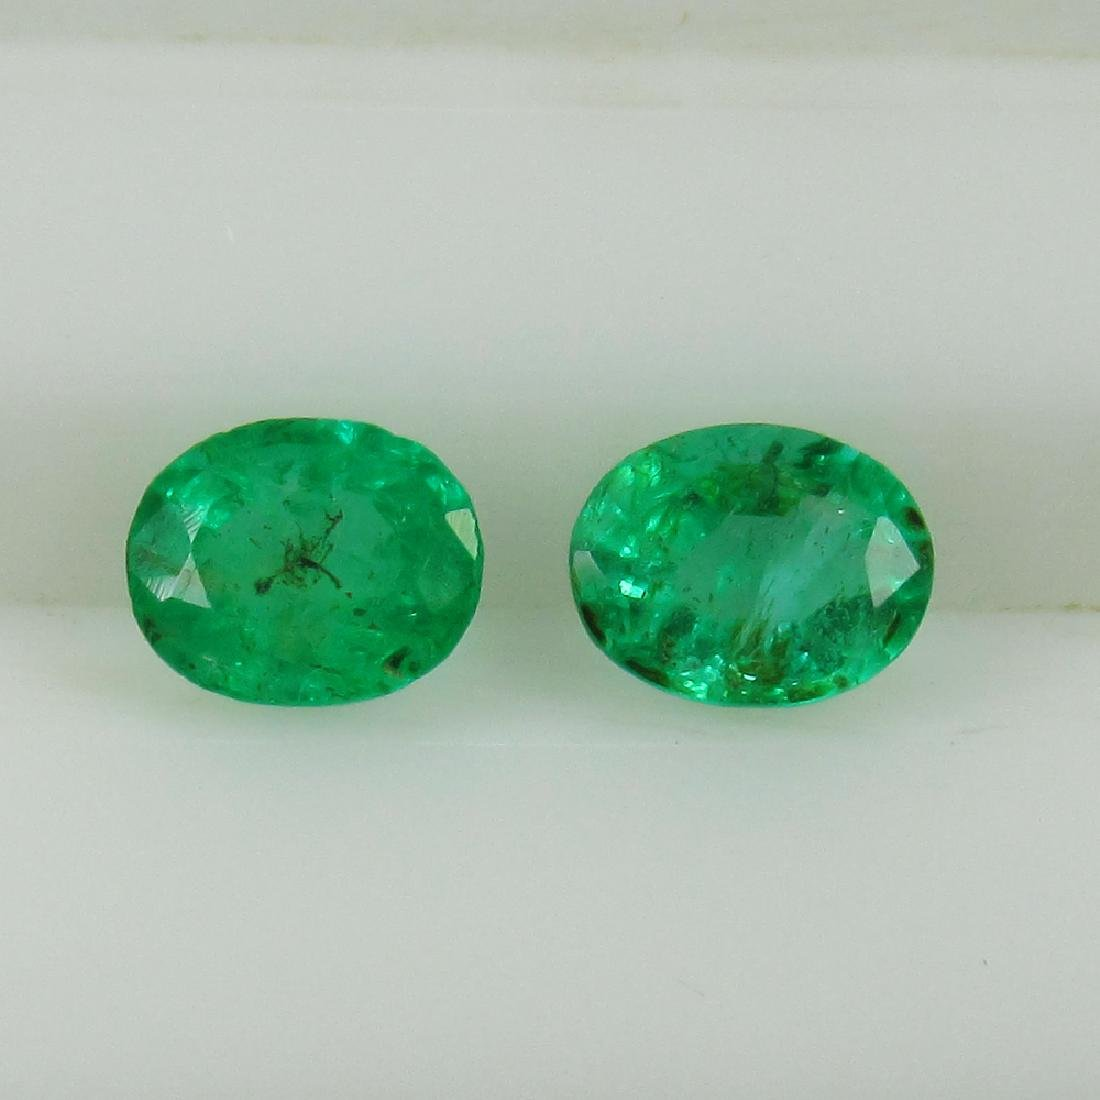 0.64 Ctw Natural Zambian Emerald 5x4 mm Oval Pair